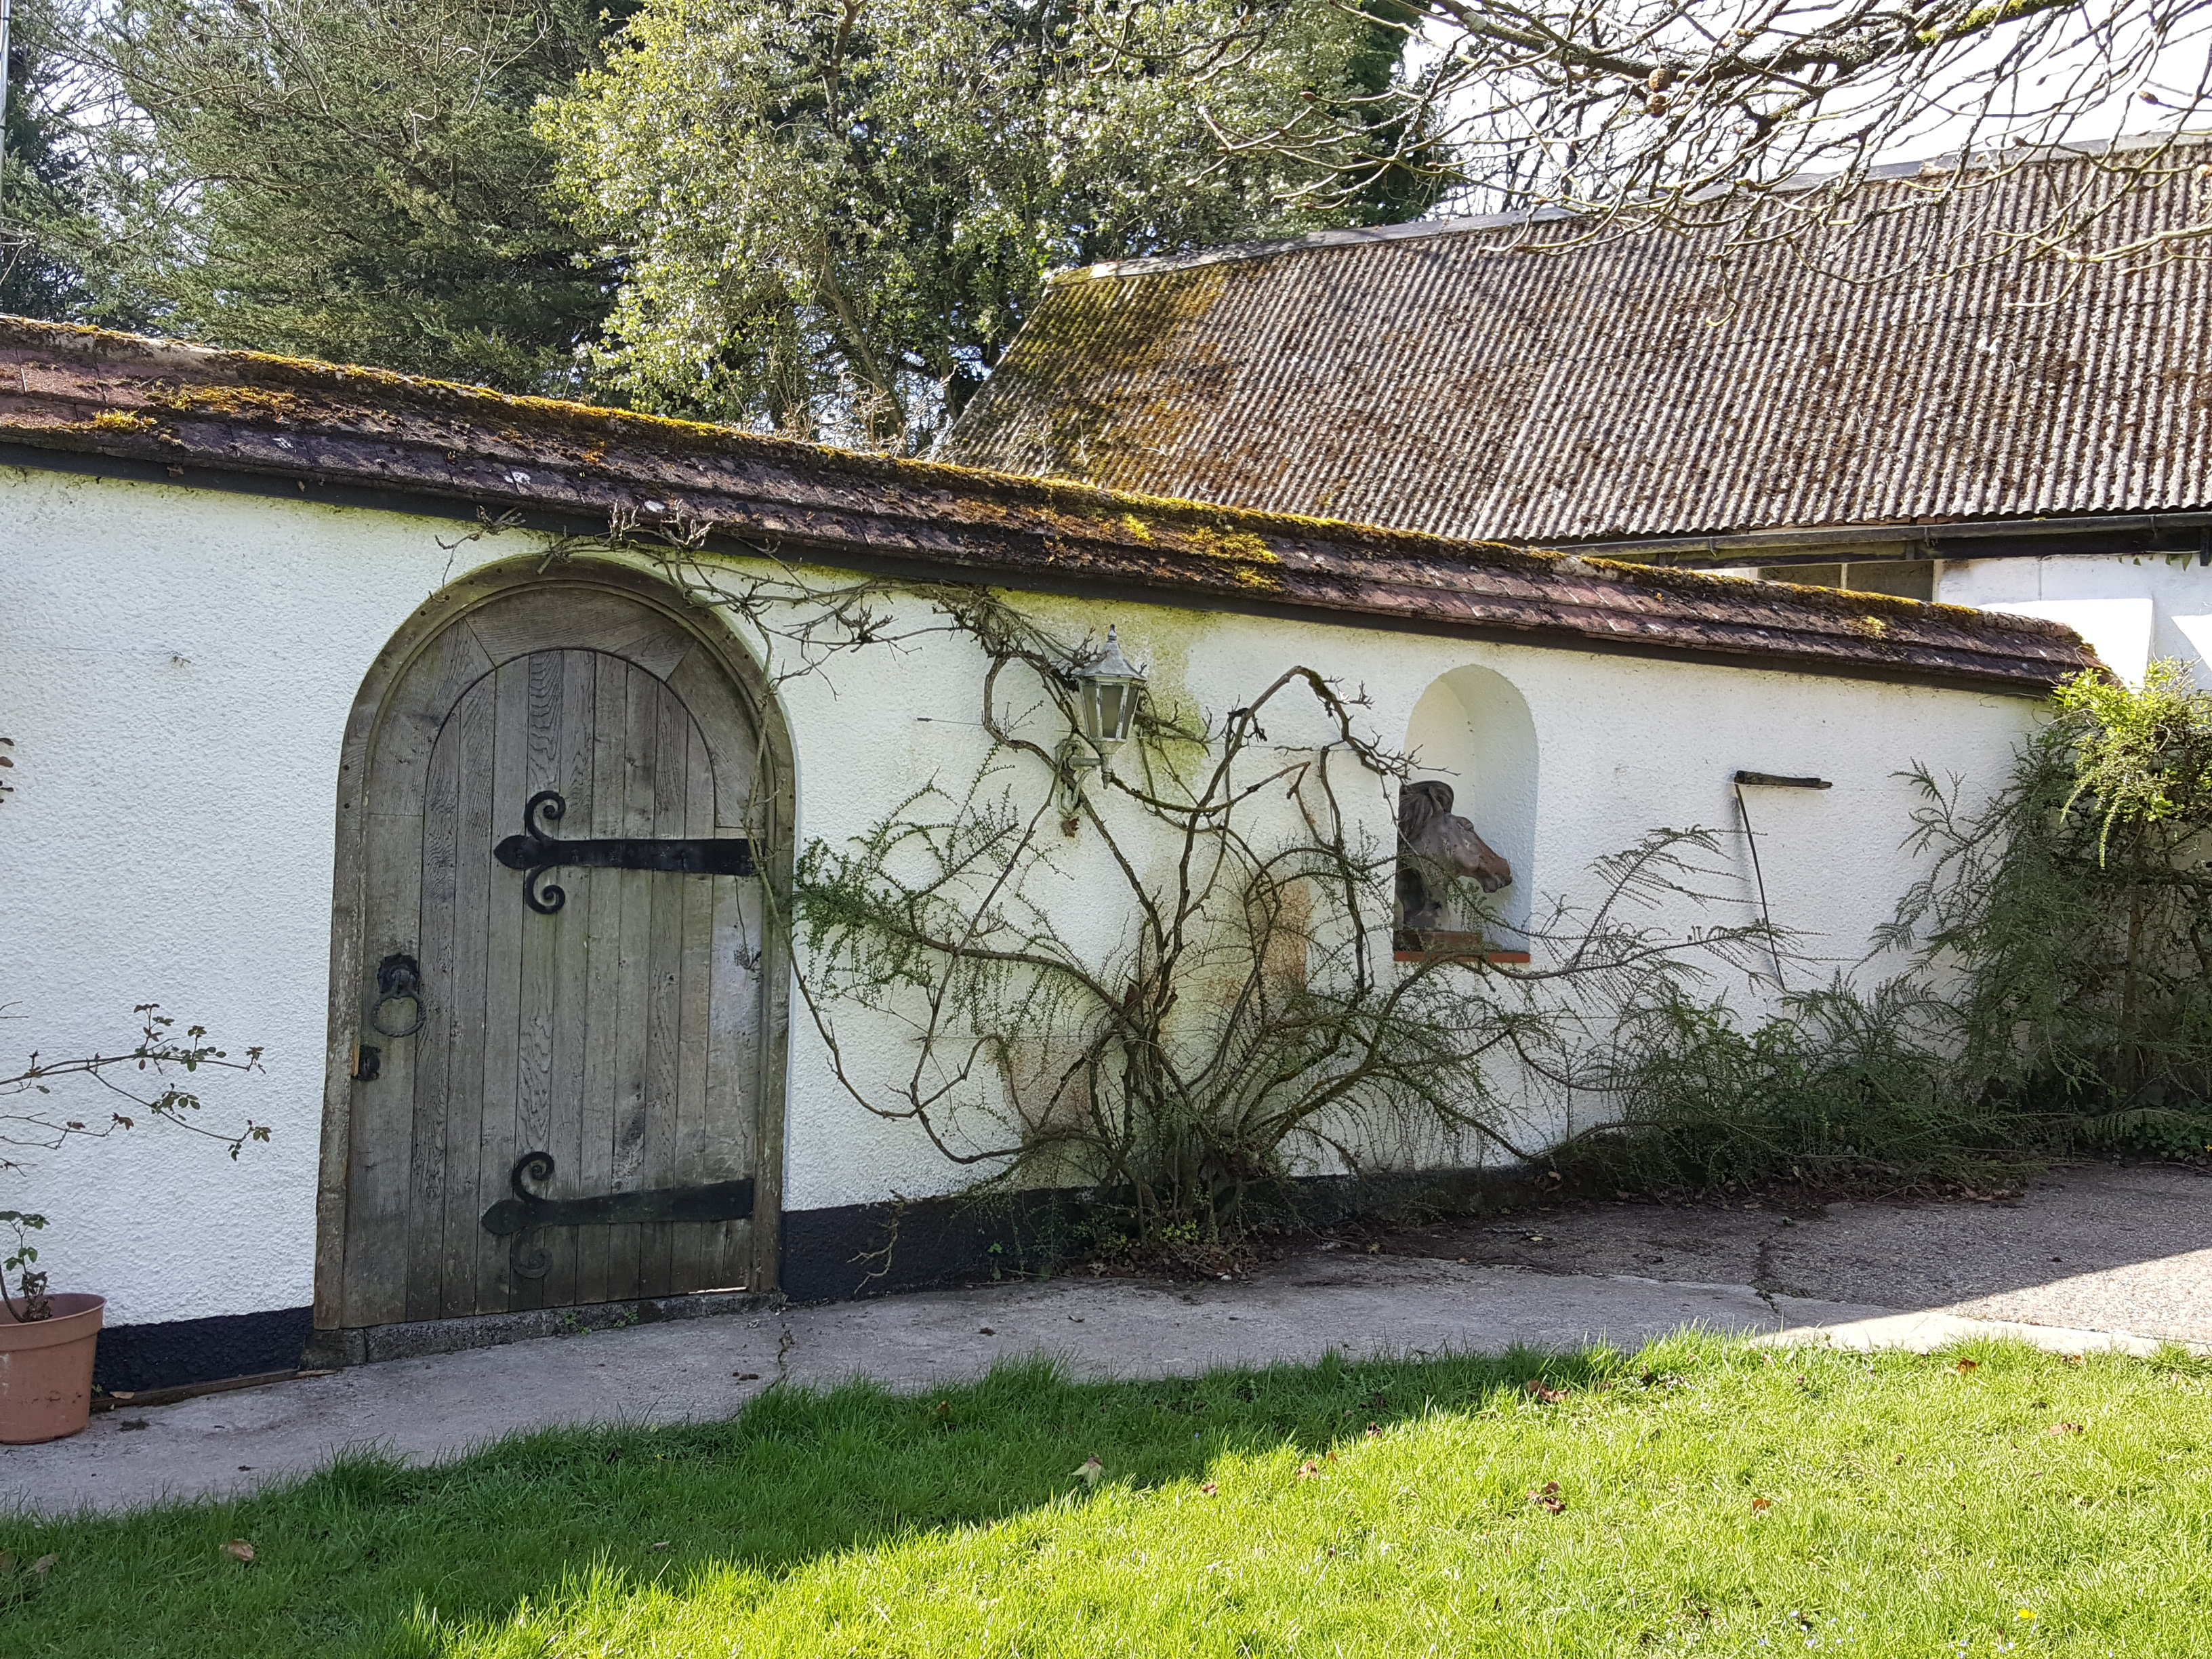 Entrance to Medieval BnB